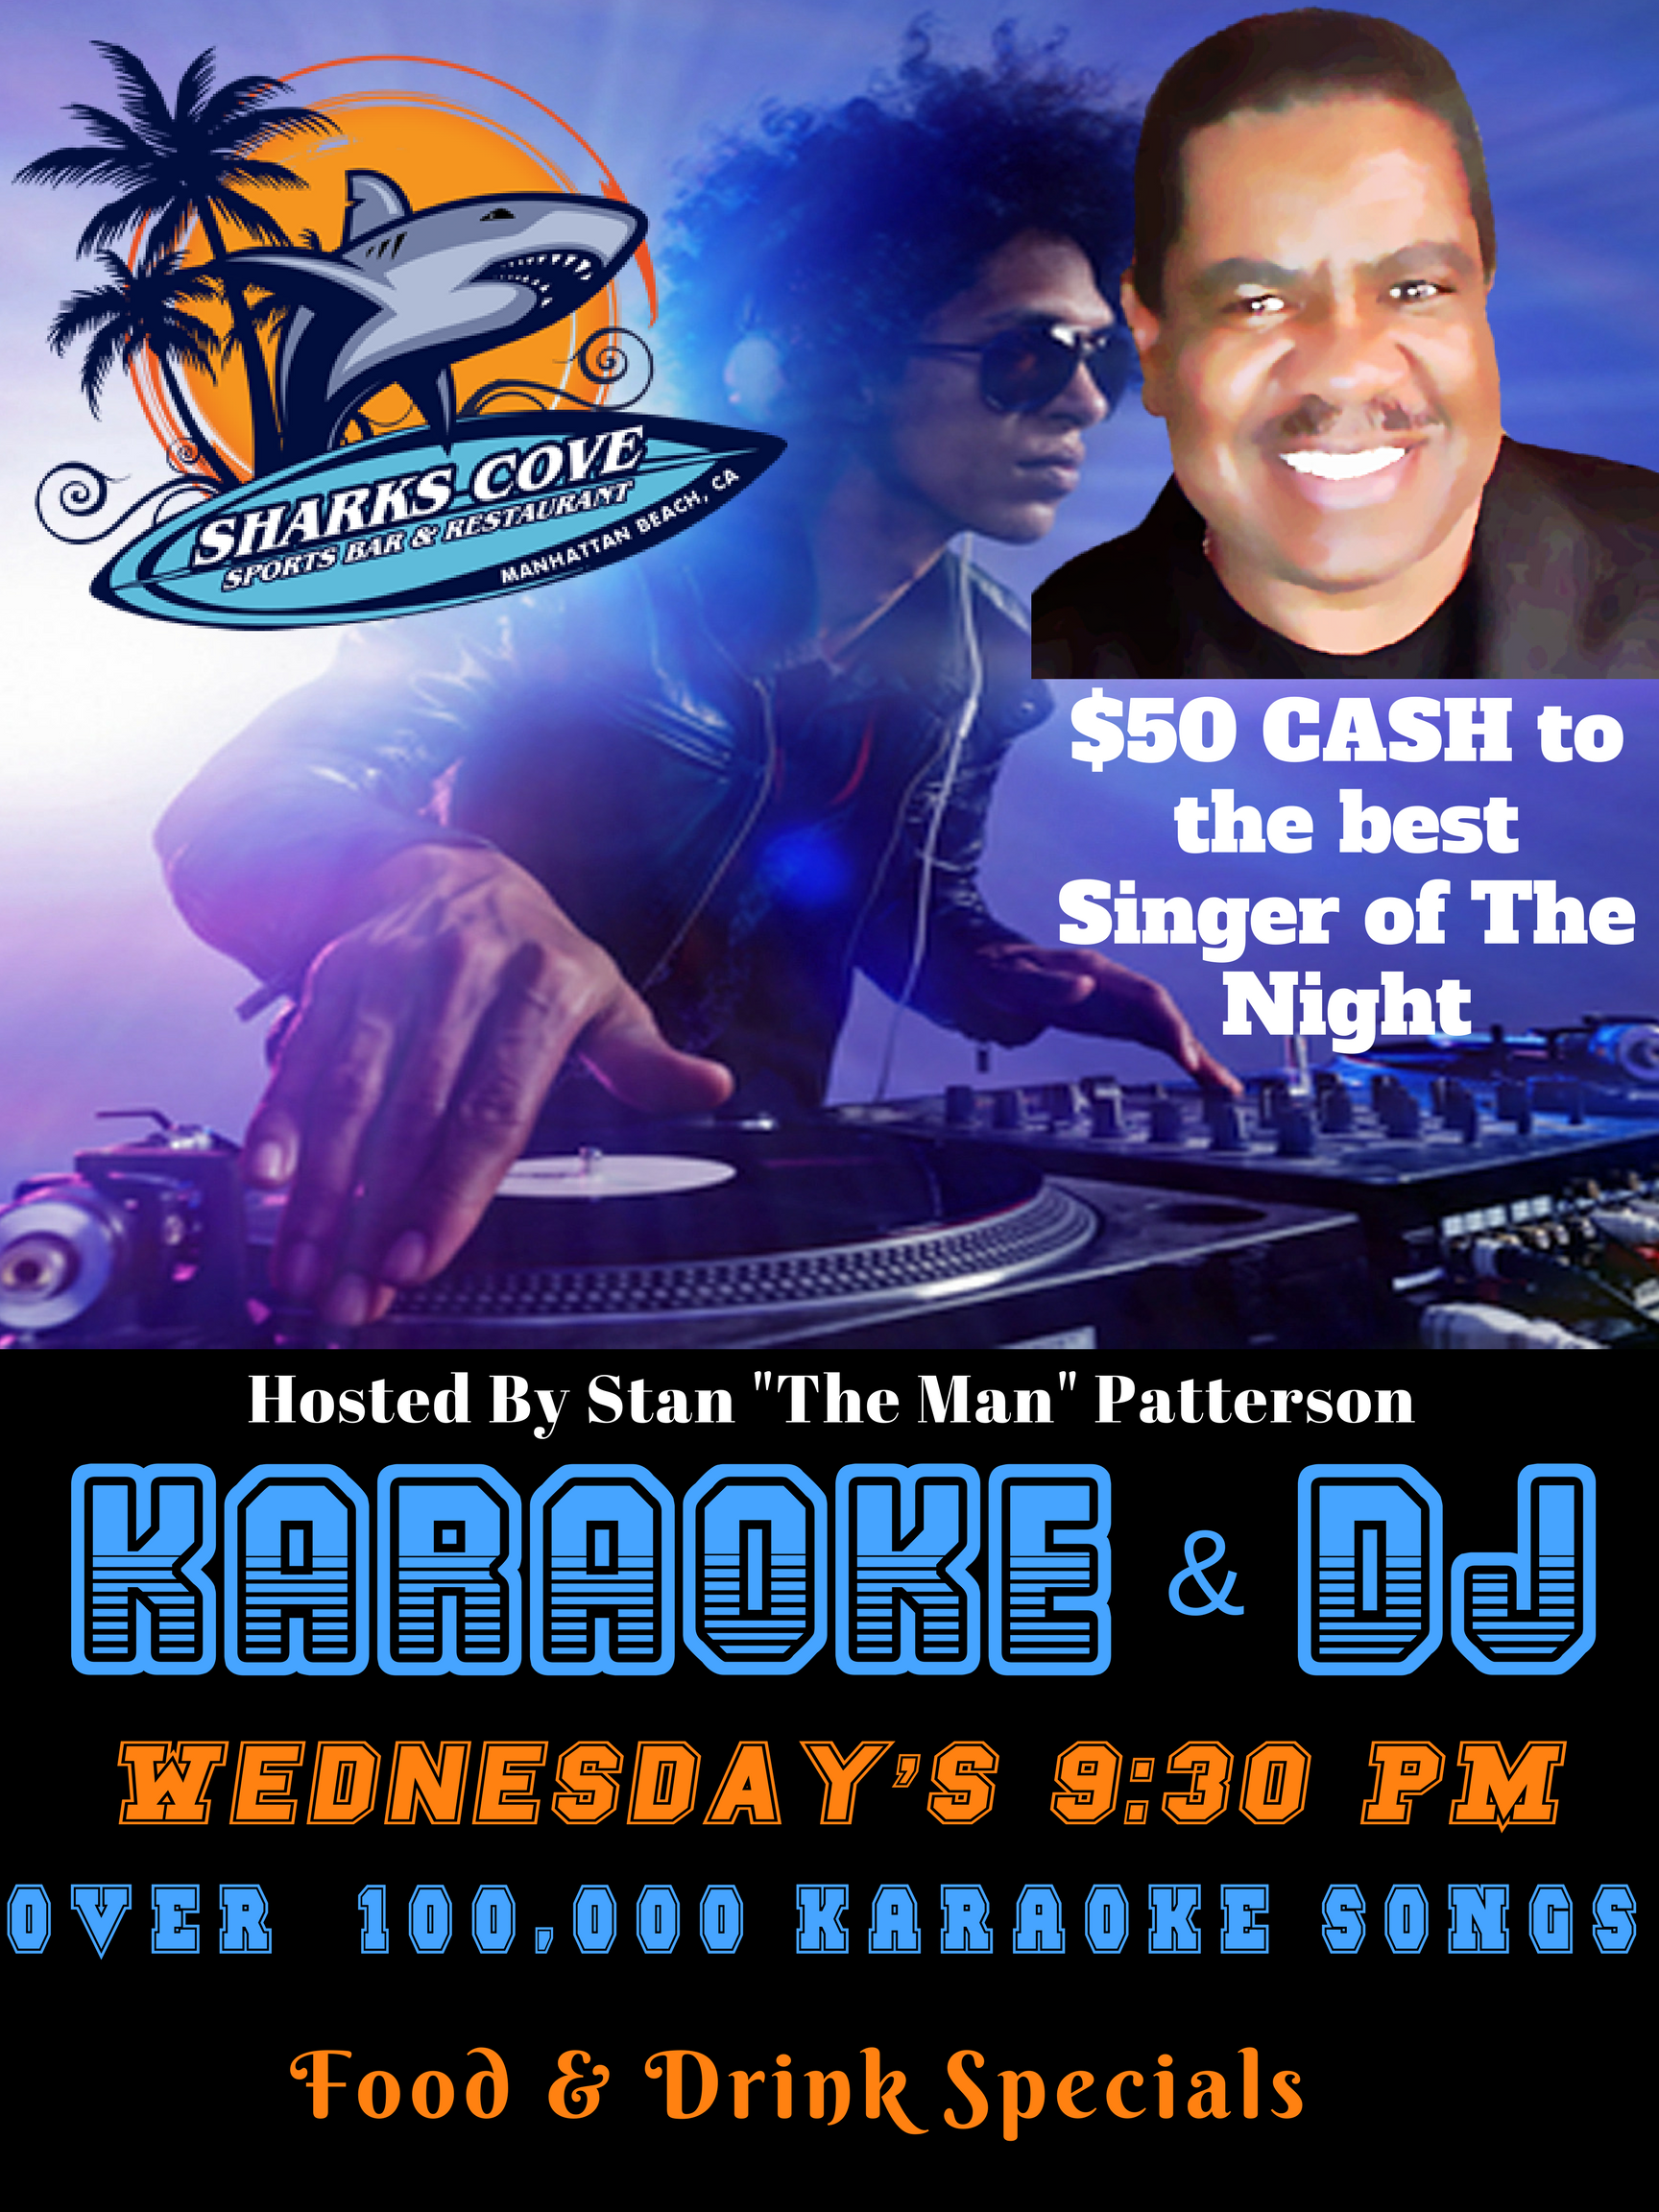 Wednesday Night Karaoke Contest